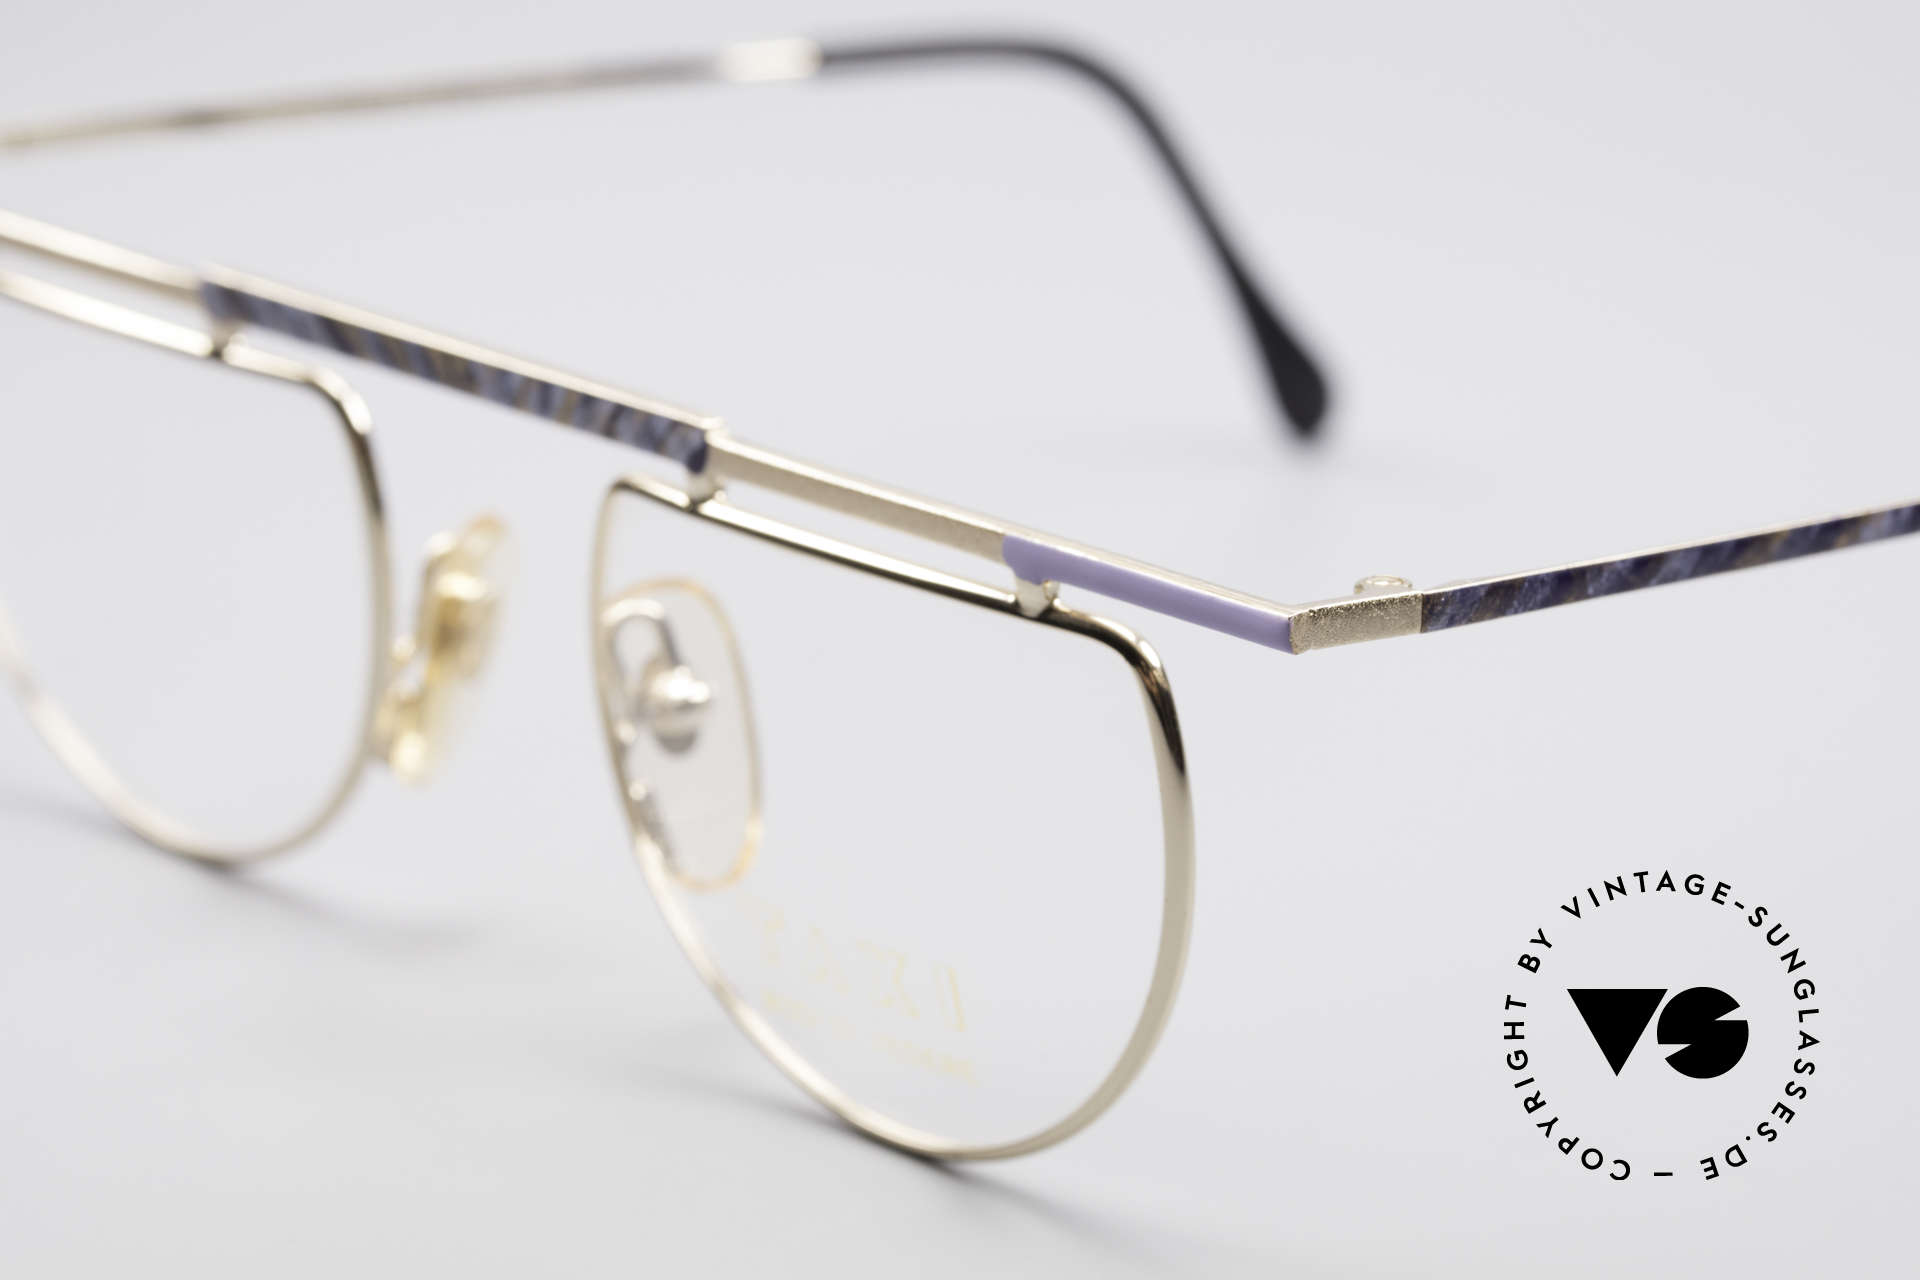 Taxi 223 by Casanova Vintage Art Eyeglasses, but functional (demos can be replaced with prescriptions), Made for Women